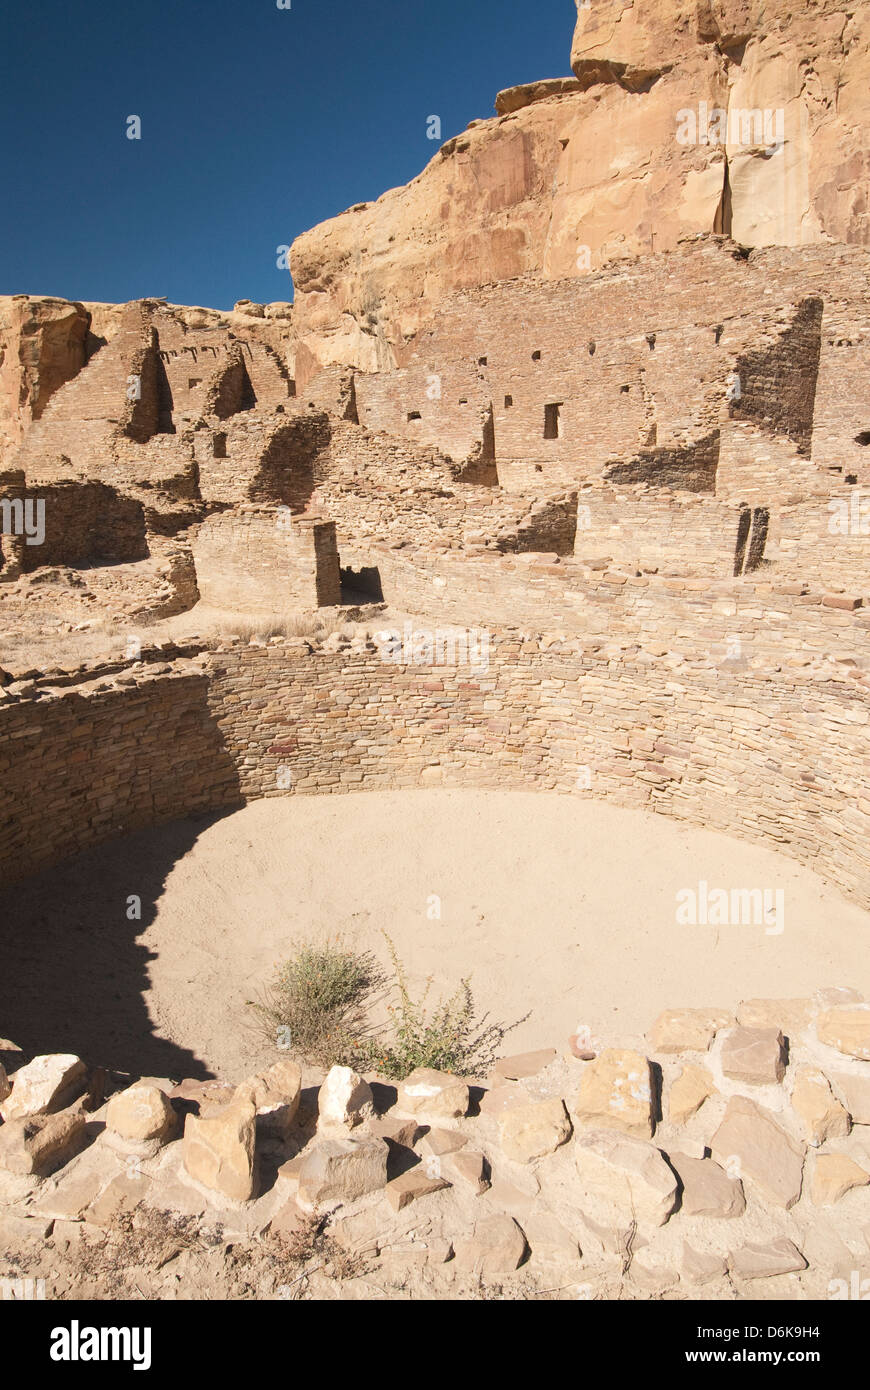 Chaco Culture National Historical Park, UNESCO World Heritage Site, New Mexico, United States of America, North - Stock Image